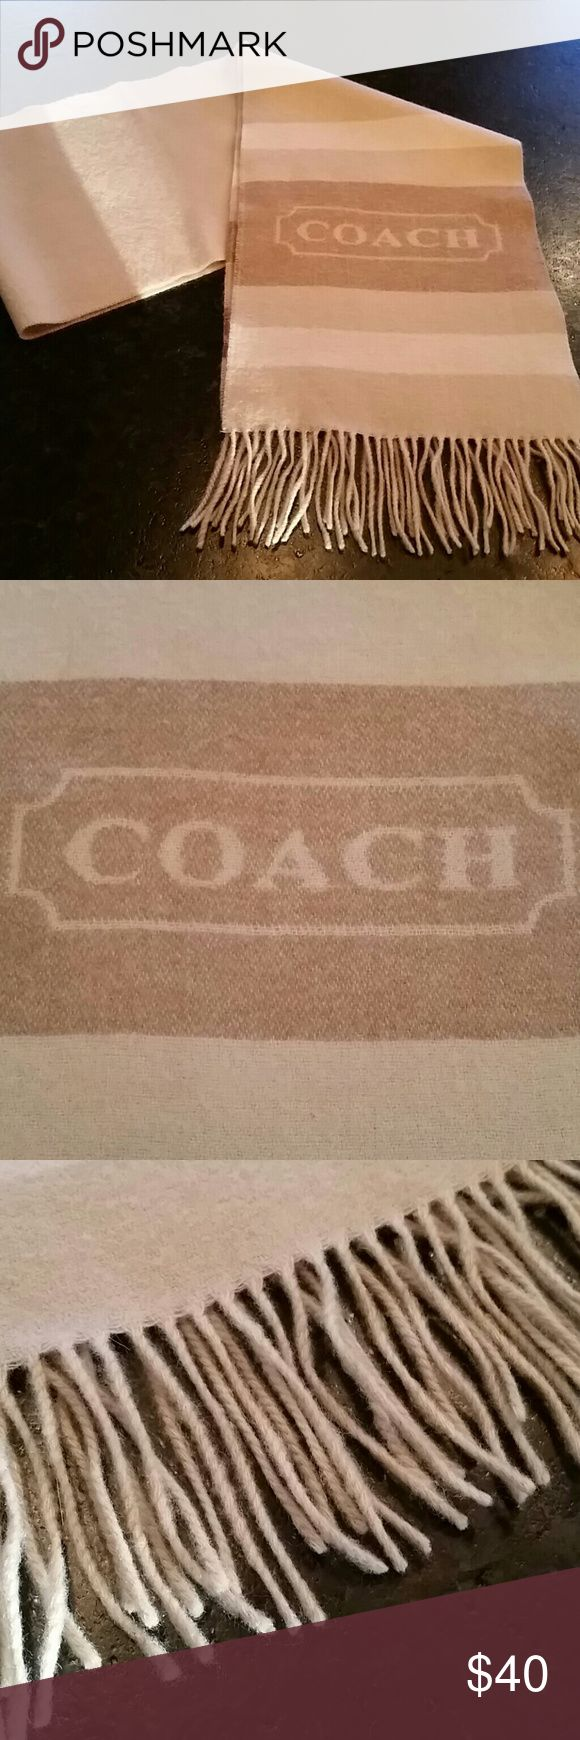 """Coach wool/cashmere striped scarf Coach wool (70%)/cashmere (30%) blend scarf in cream, tan and camel color stripes with large Coach logo.  Fringe detail. Excellent gently worn condition.  60"""" in length + fringe. Coach Accessories Scarves & Wraps"""